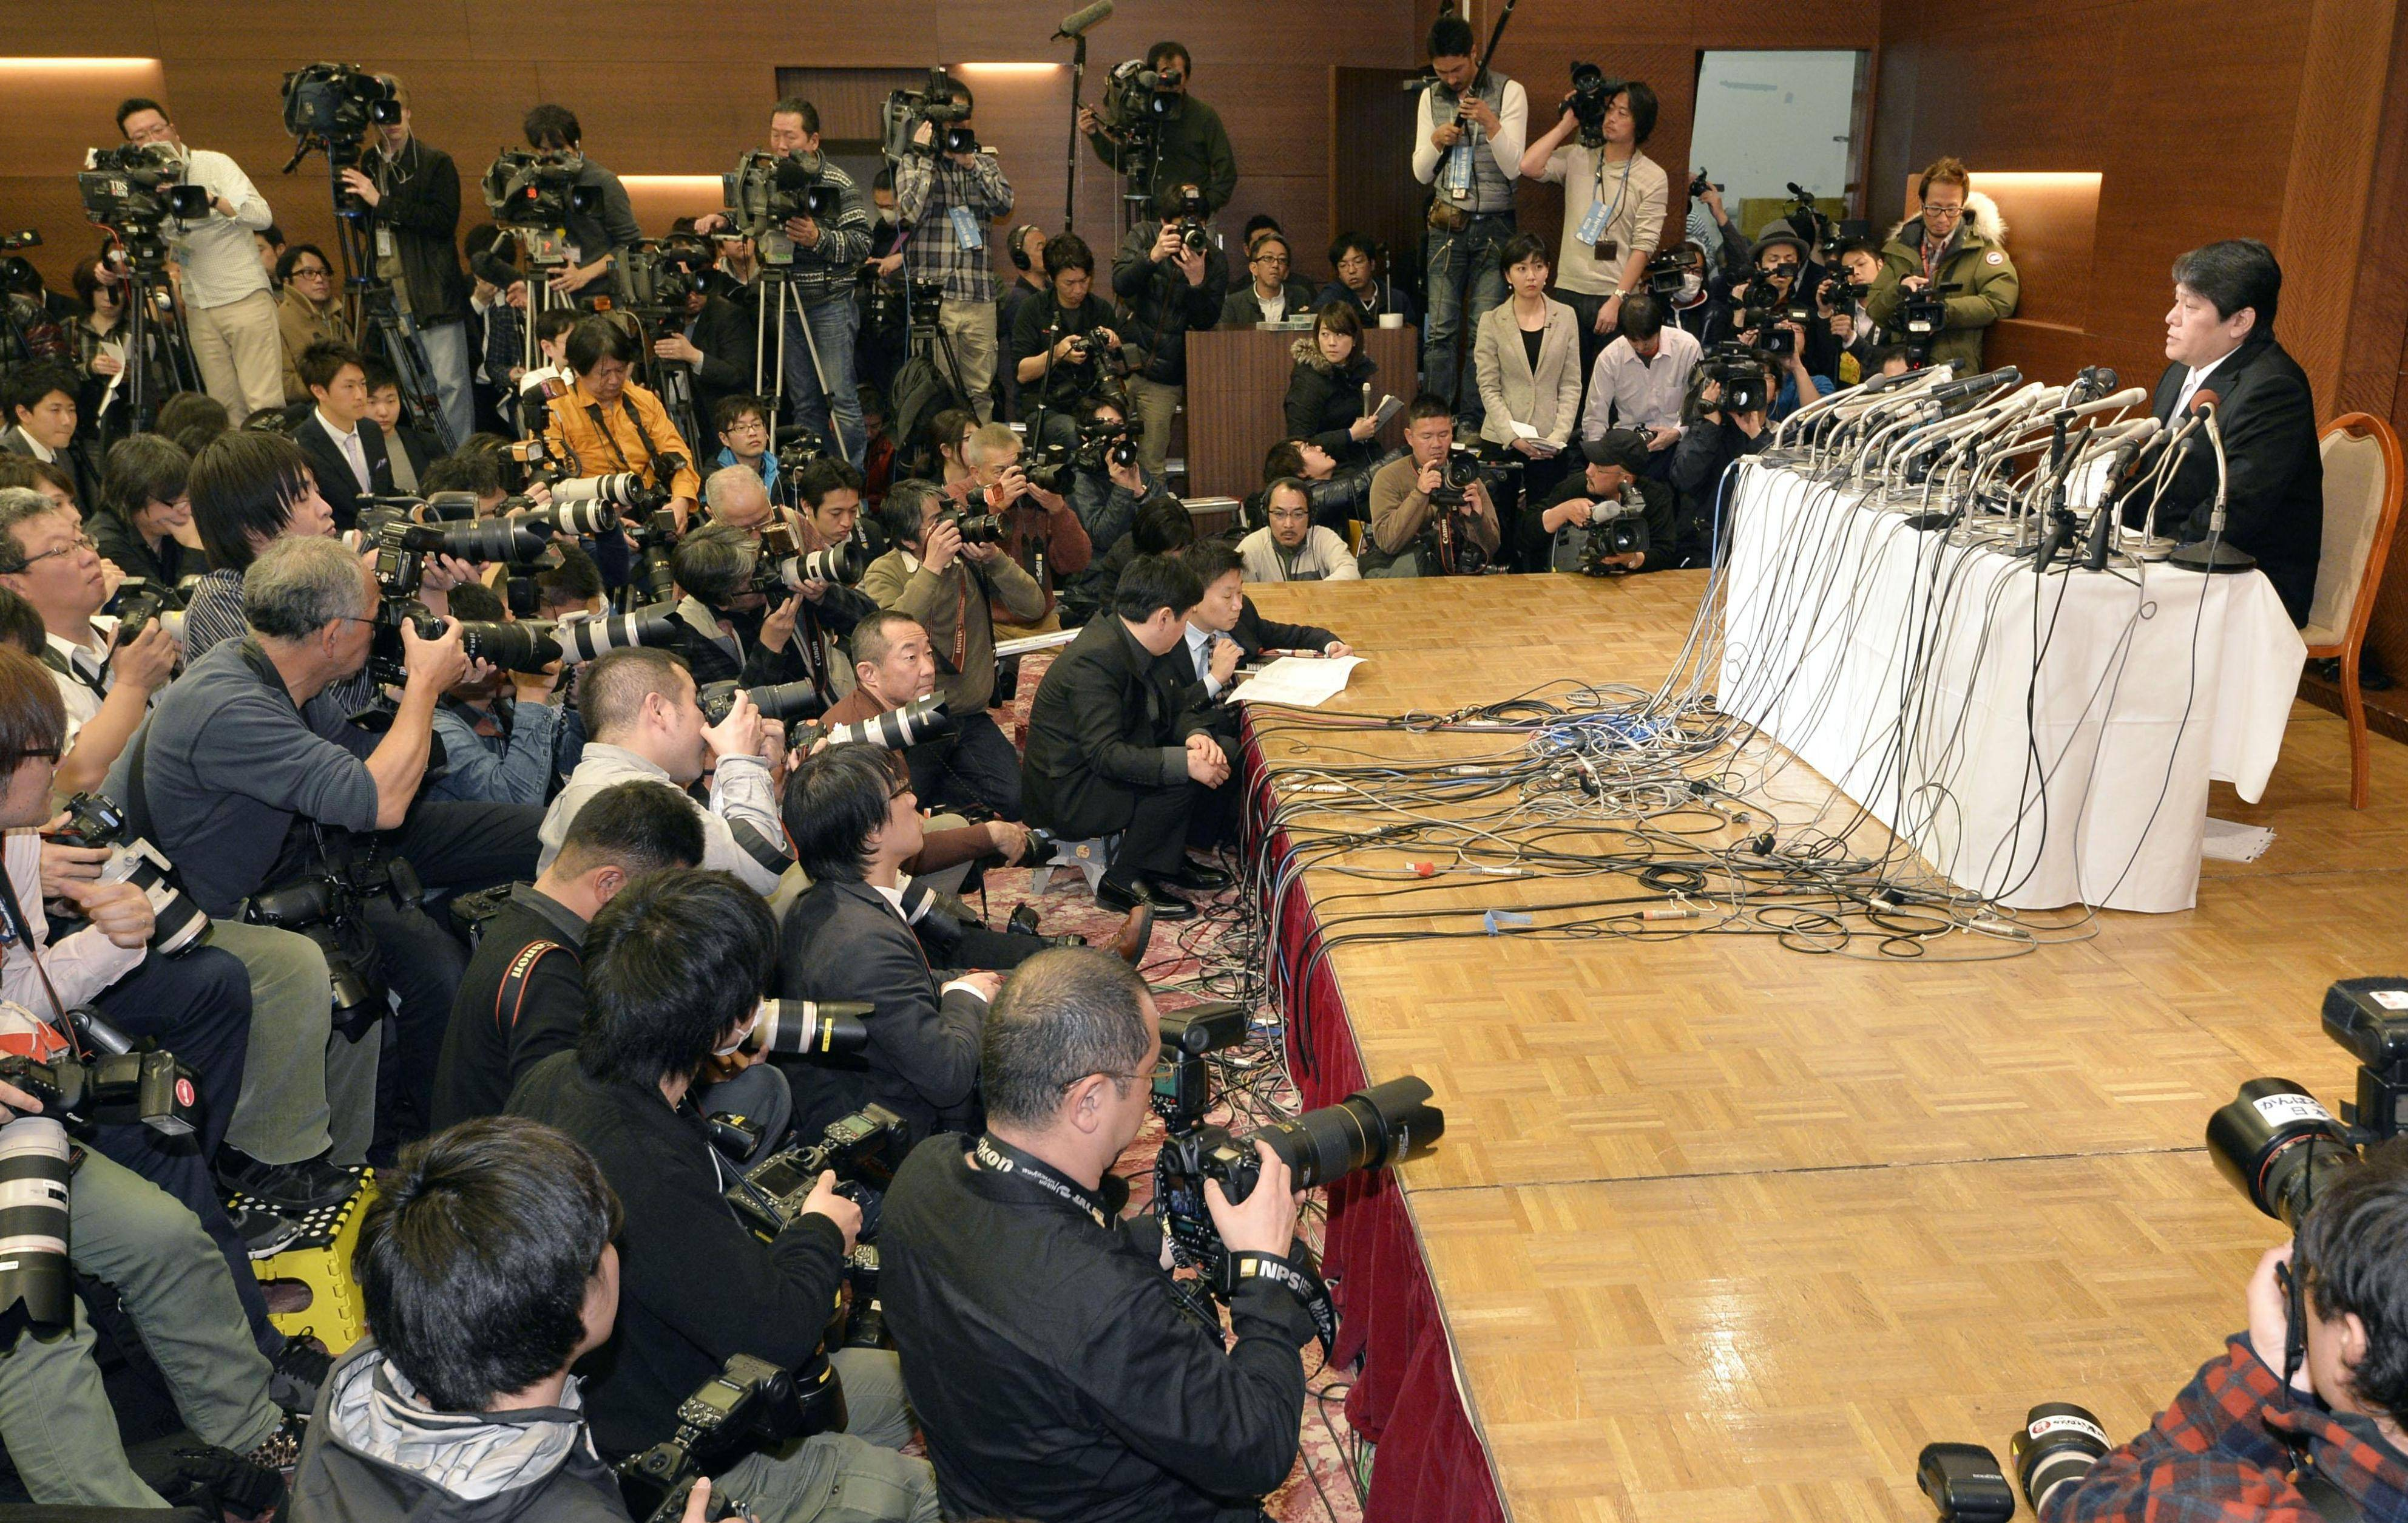 Mamoru Samuragochi, who has admitted to hiring a ghostwriter for his classical music pieces, speaks to the media at a Tokyo hotel Friday. | KYODO